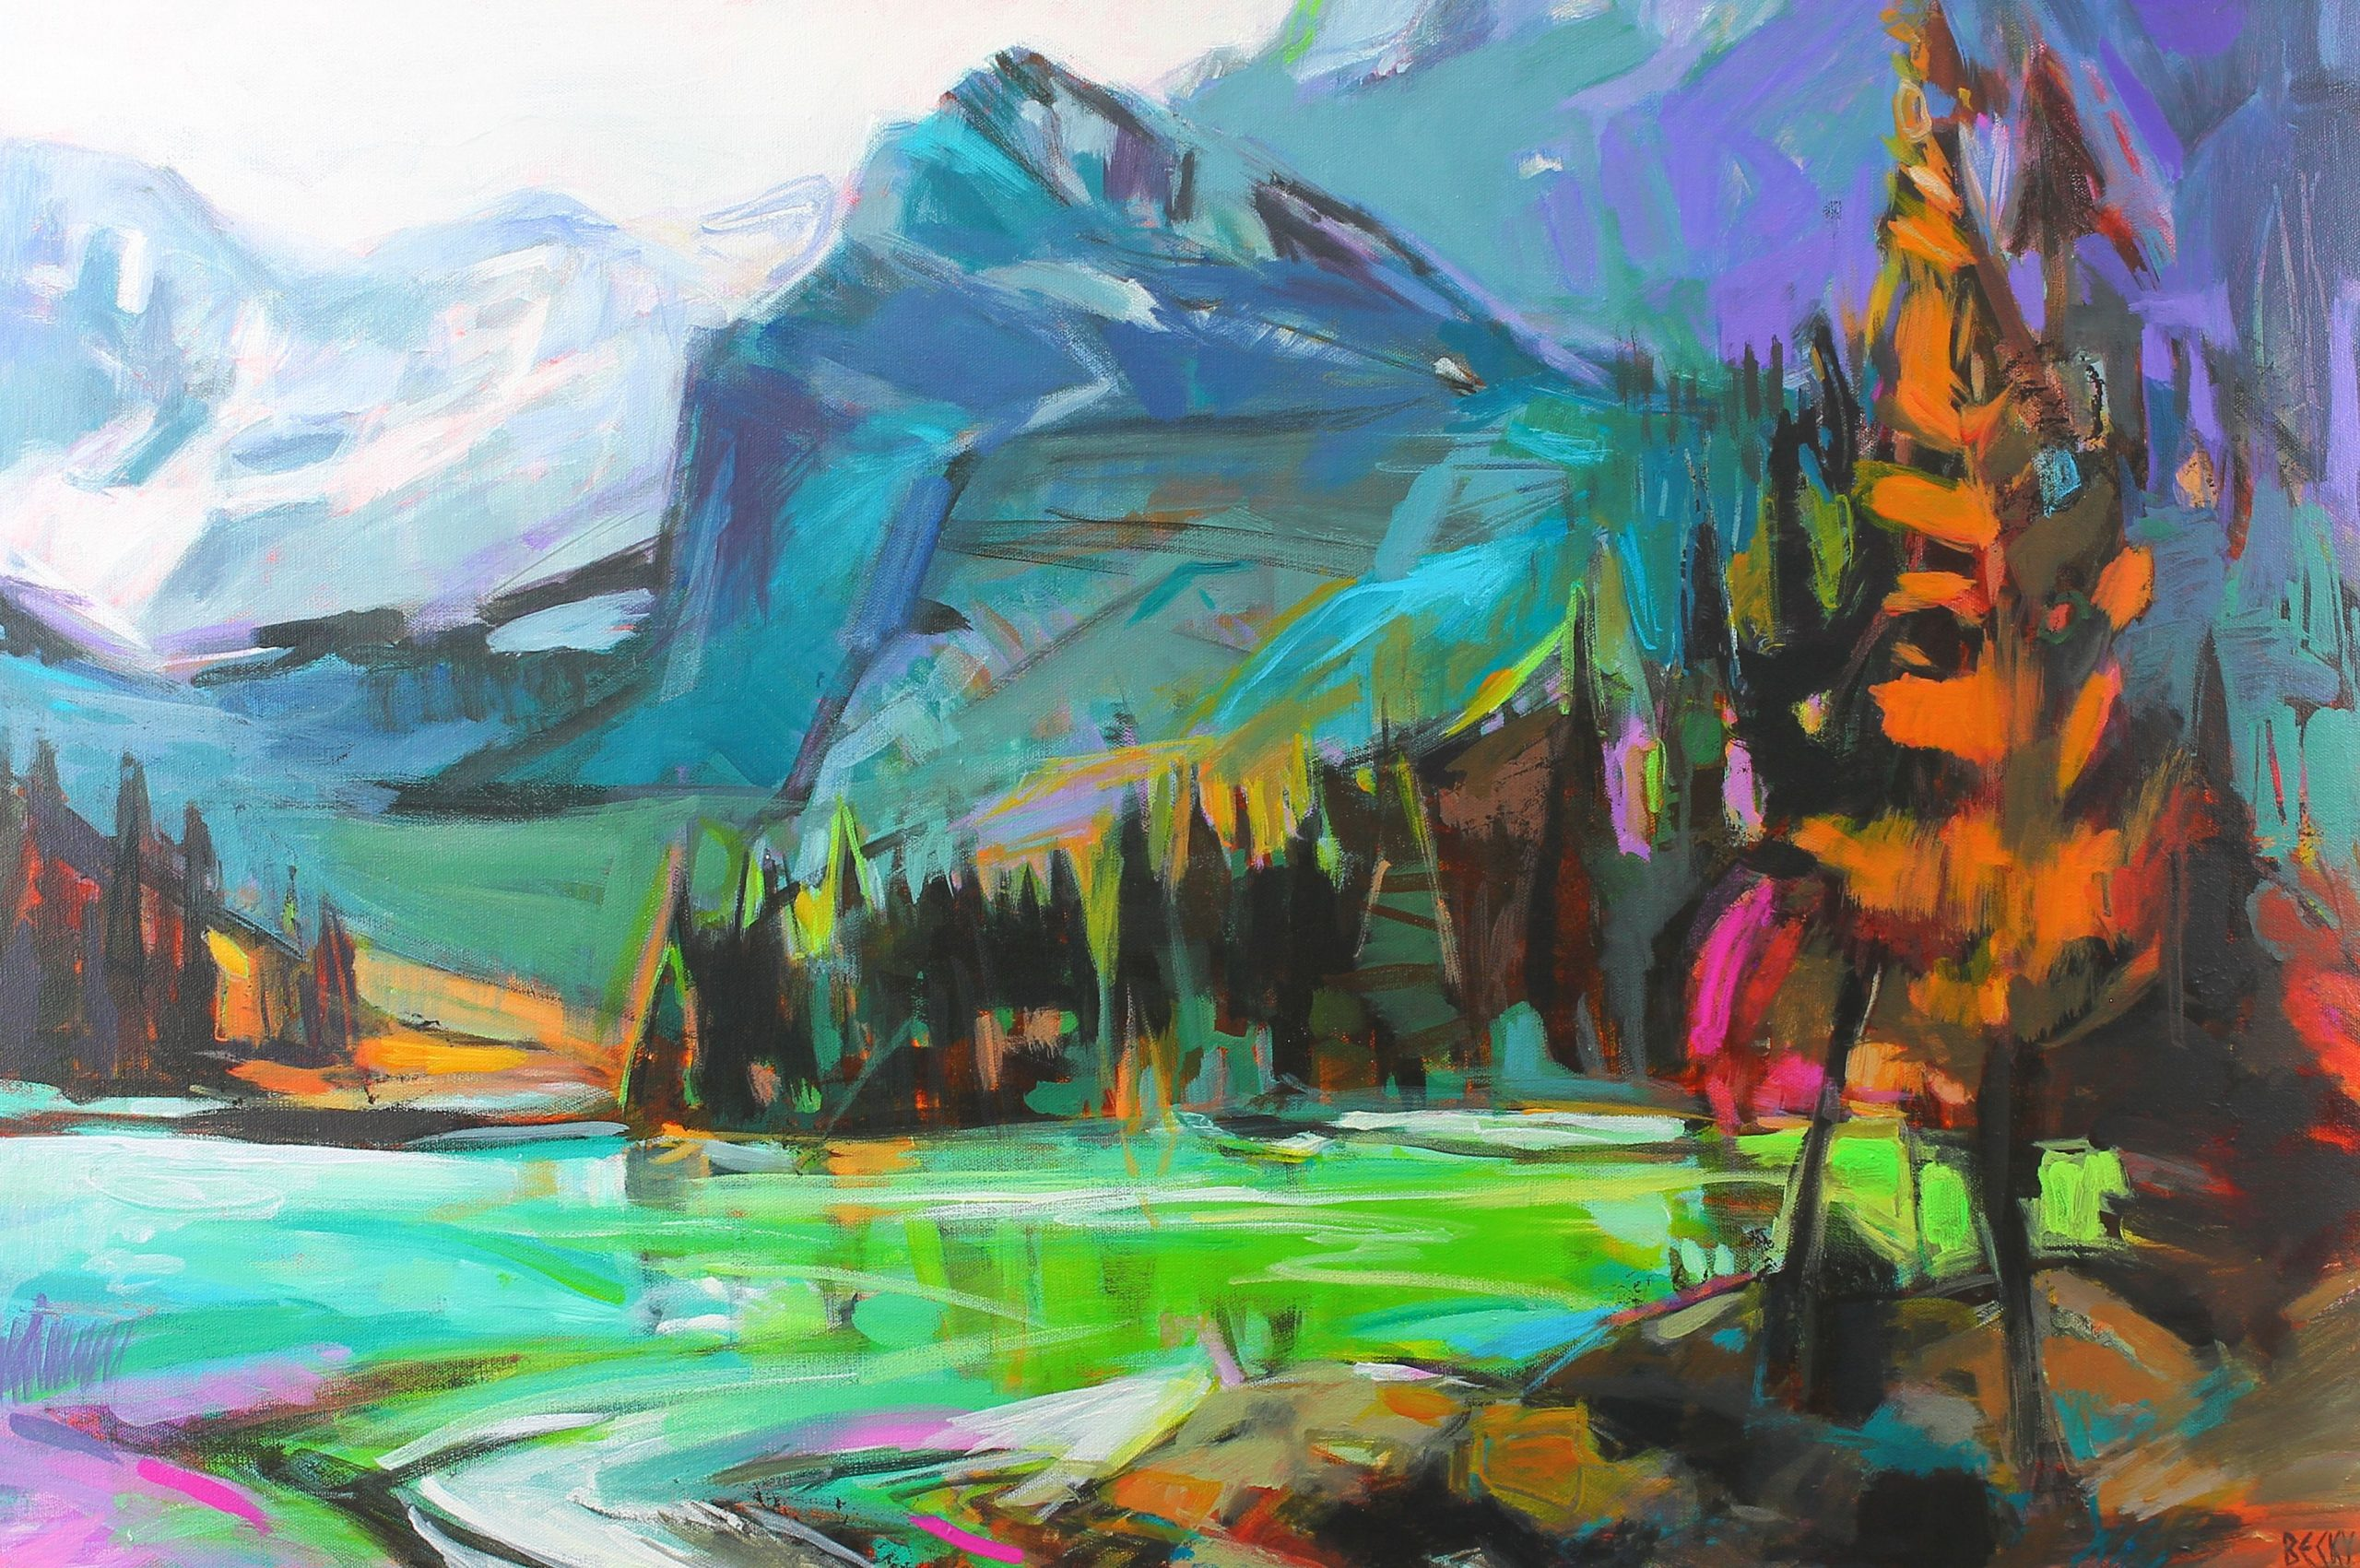 Mountain Colors, impressionist landscape painting by Becky Holuk | Effusion Art Gallery +  Glass Studio, Invermere BC